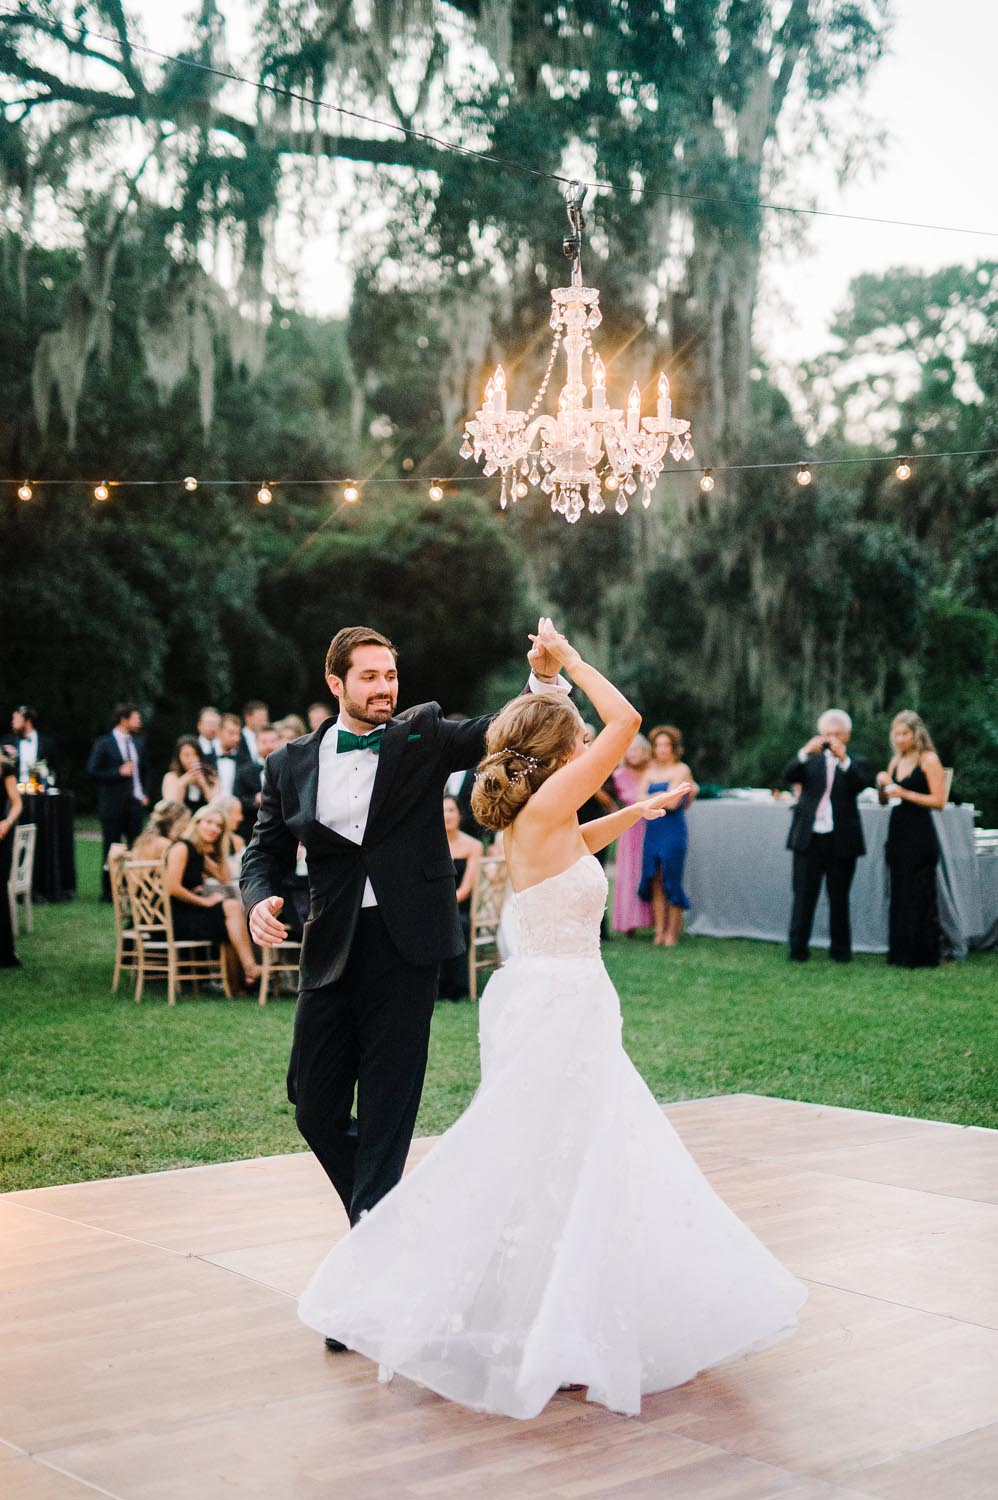 Copy of The garden's natural beauty overflowed with greenery and oaks dripping in Spanish moss. Wedding planning and design by A Charleston Bride